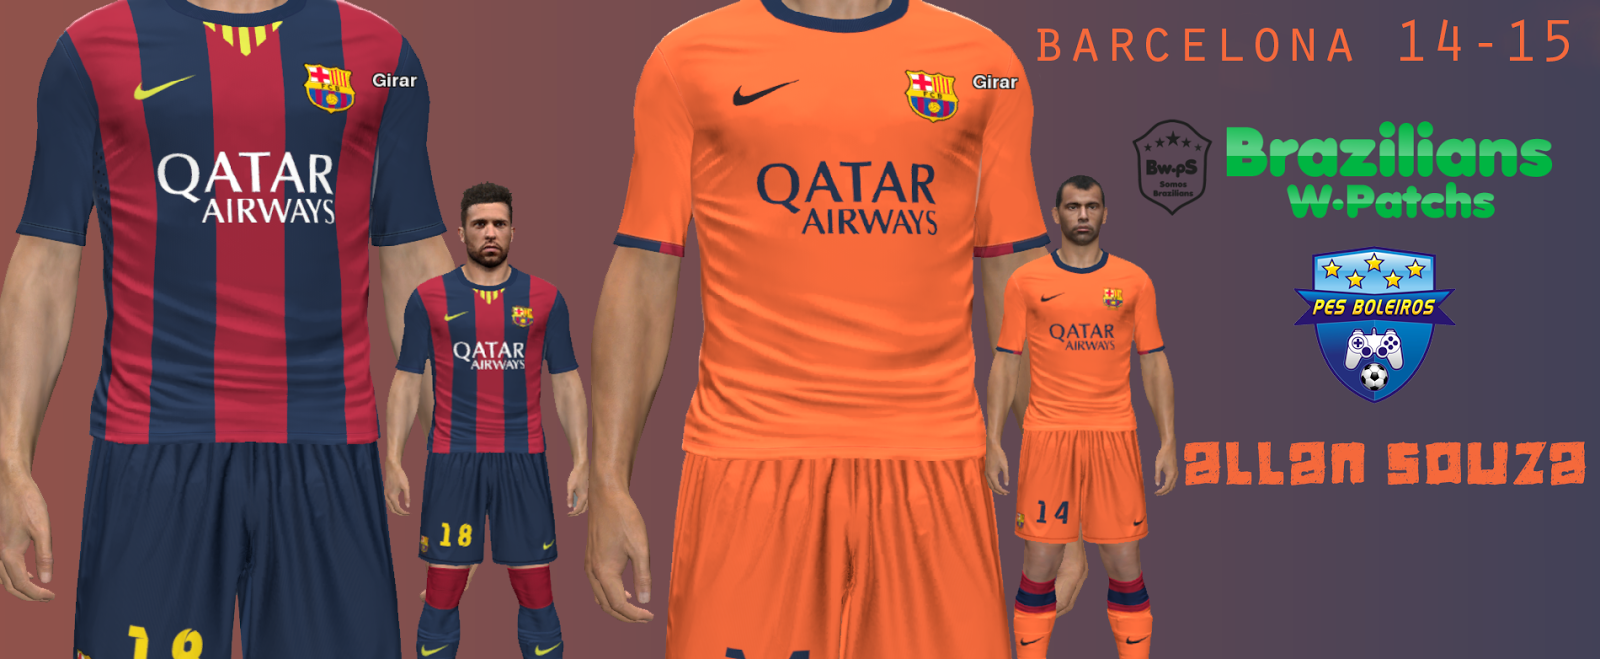 PES 2014 PC  Uniformes 2014 2015 Barcelona • Brazilians W-Patchs 80a9da1ddb24f